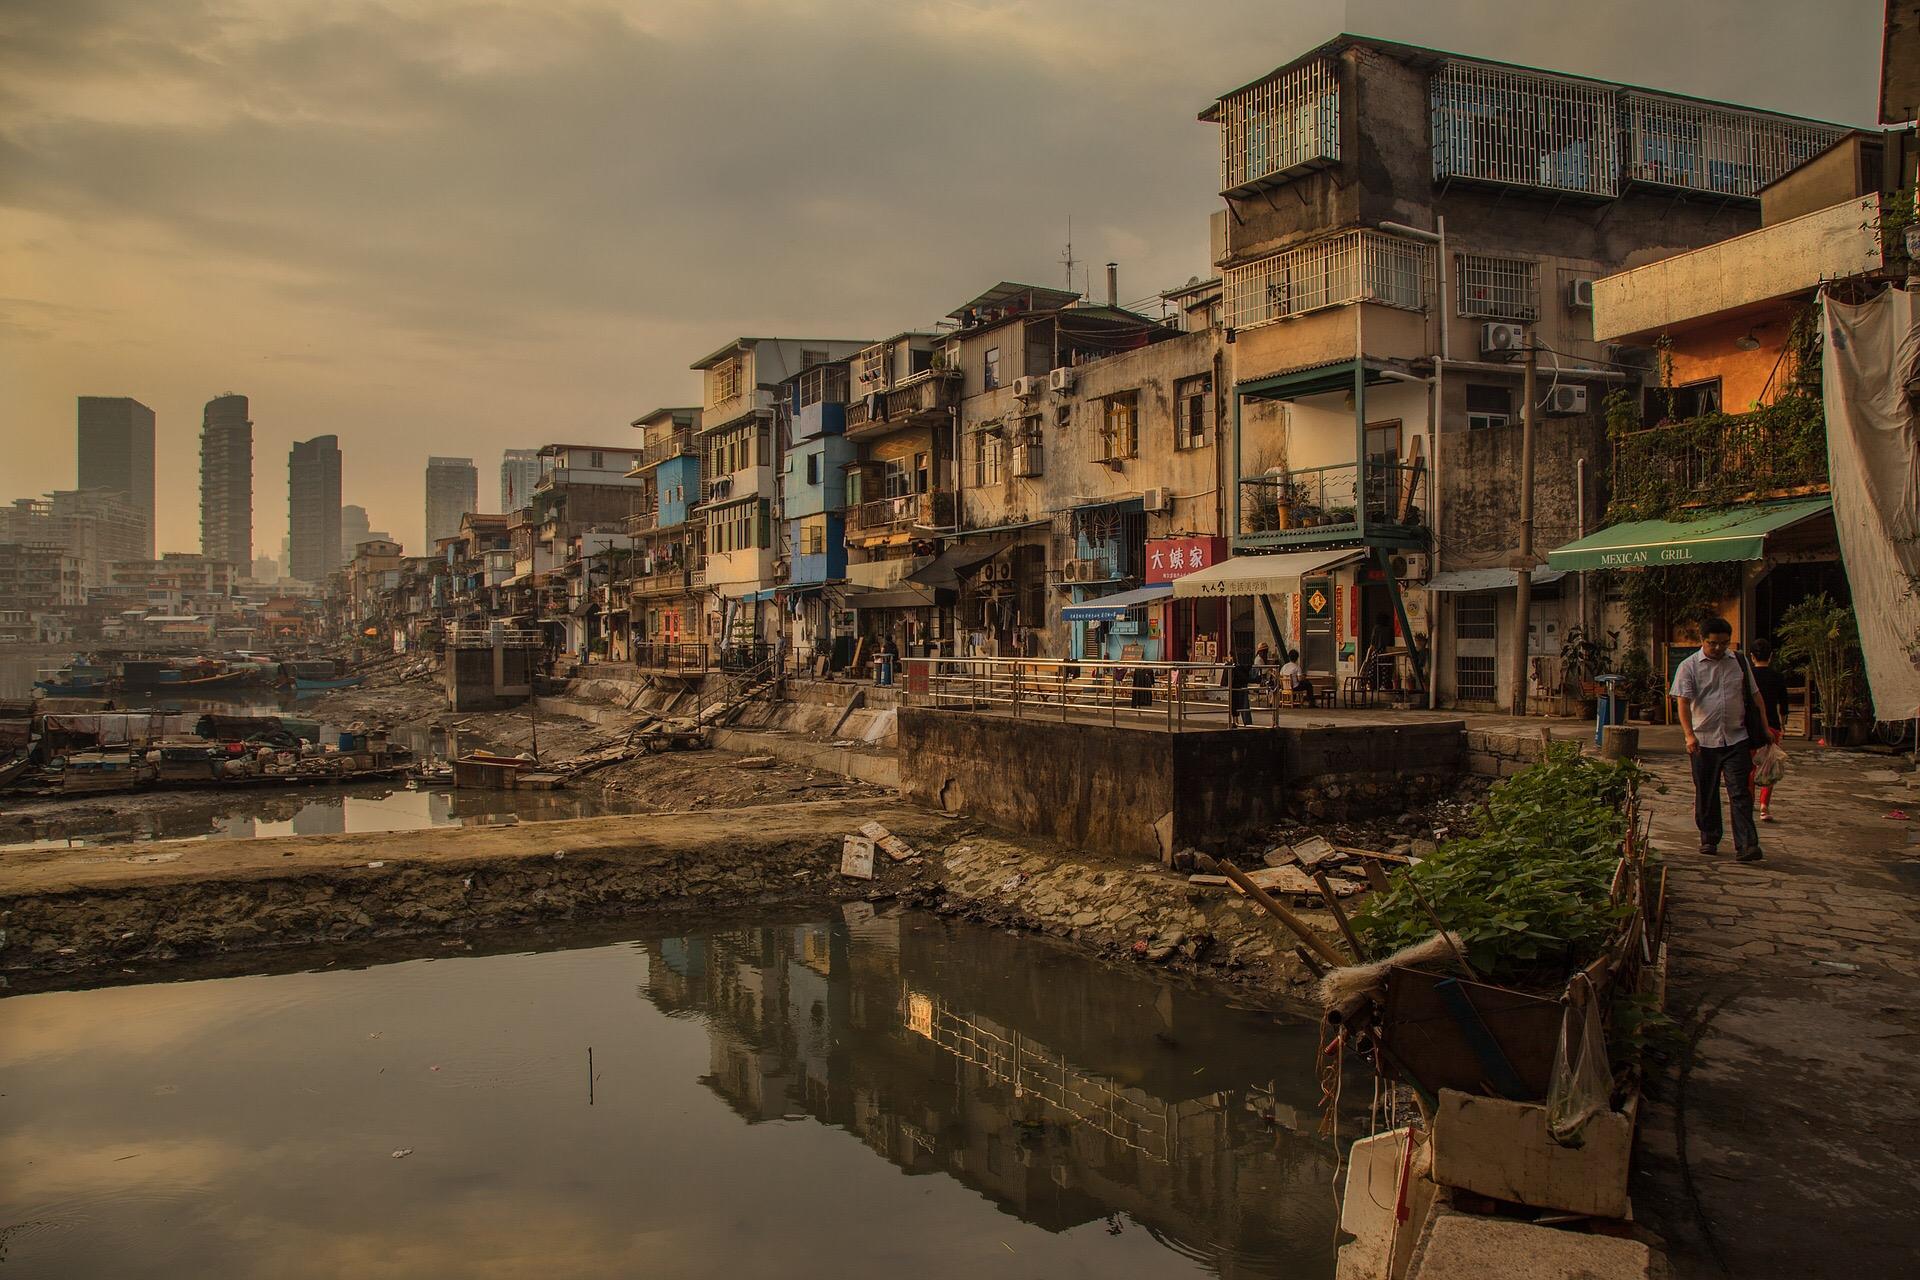 Global population in extreme poverty dropped from 95% to 10% since 1820